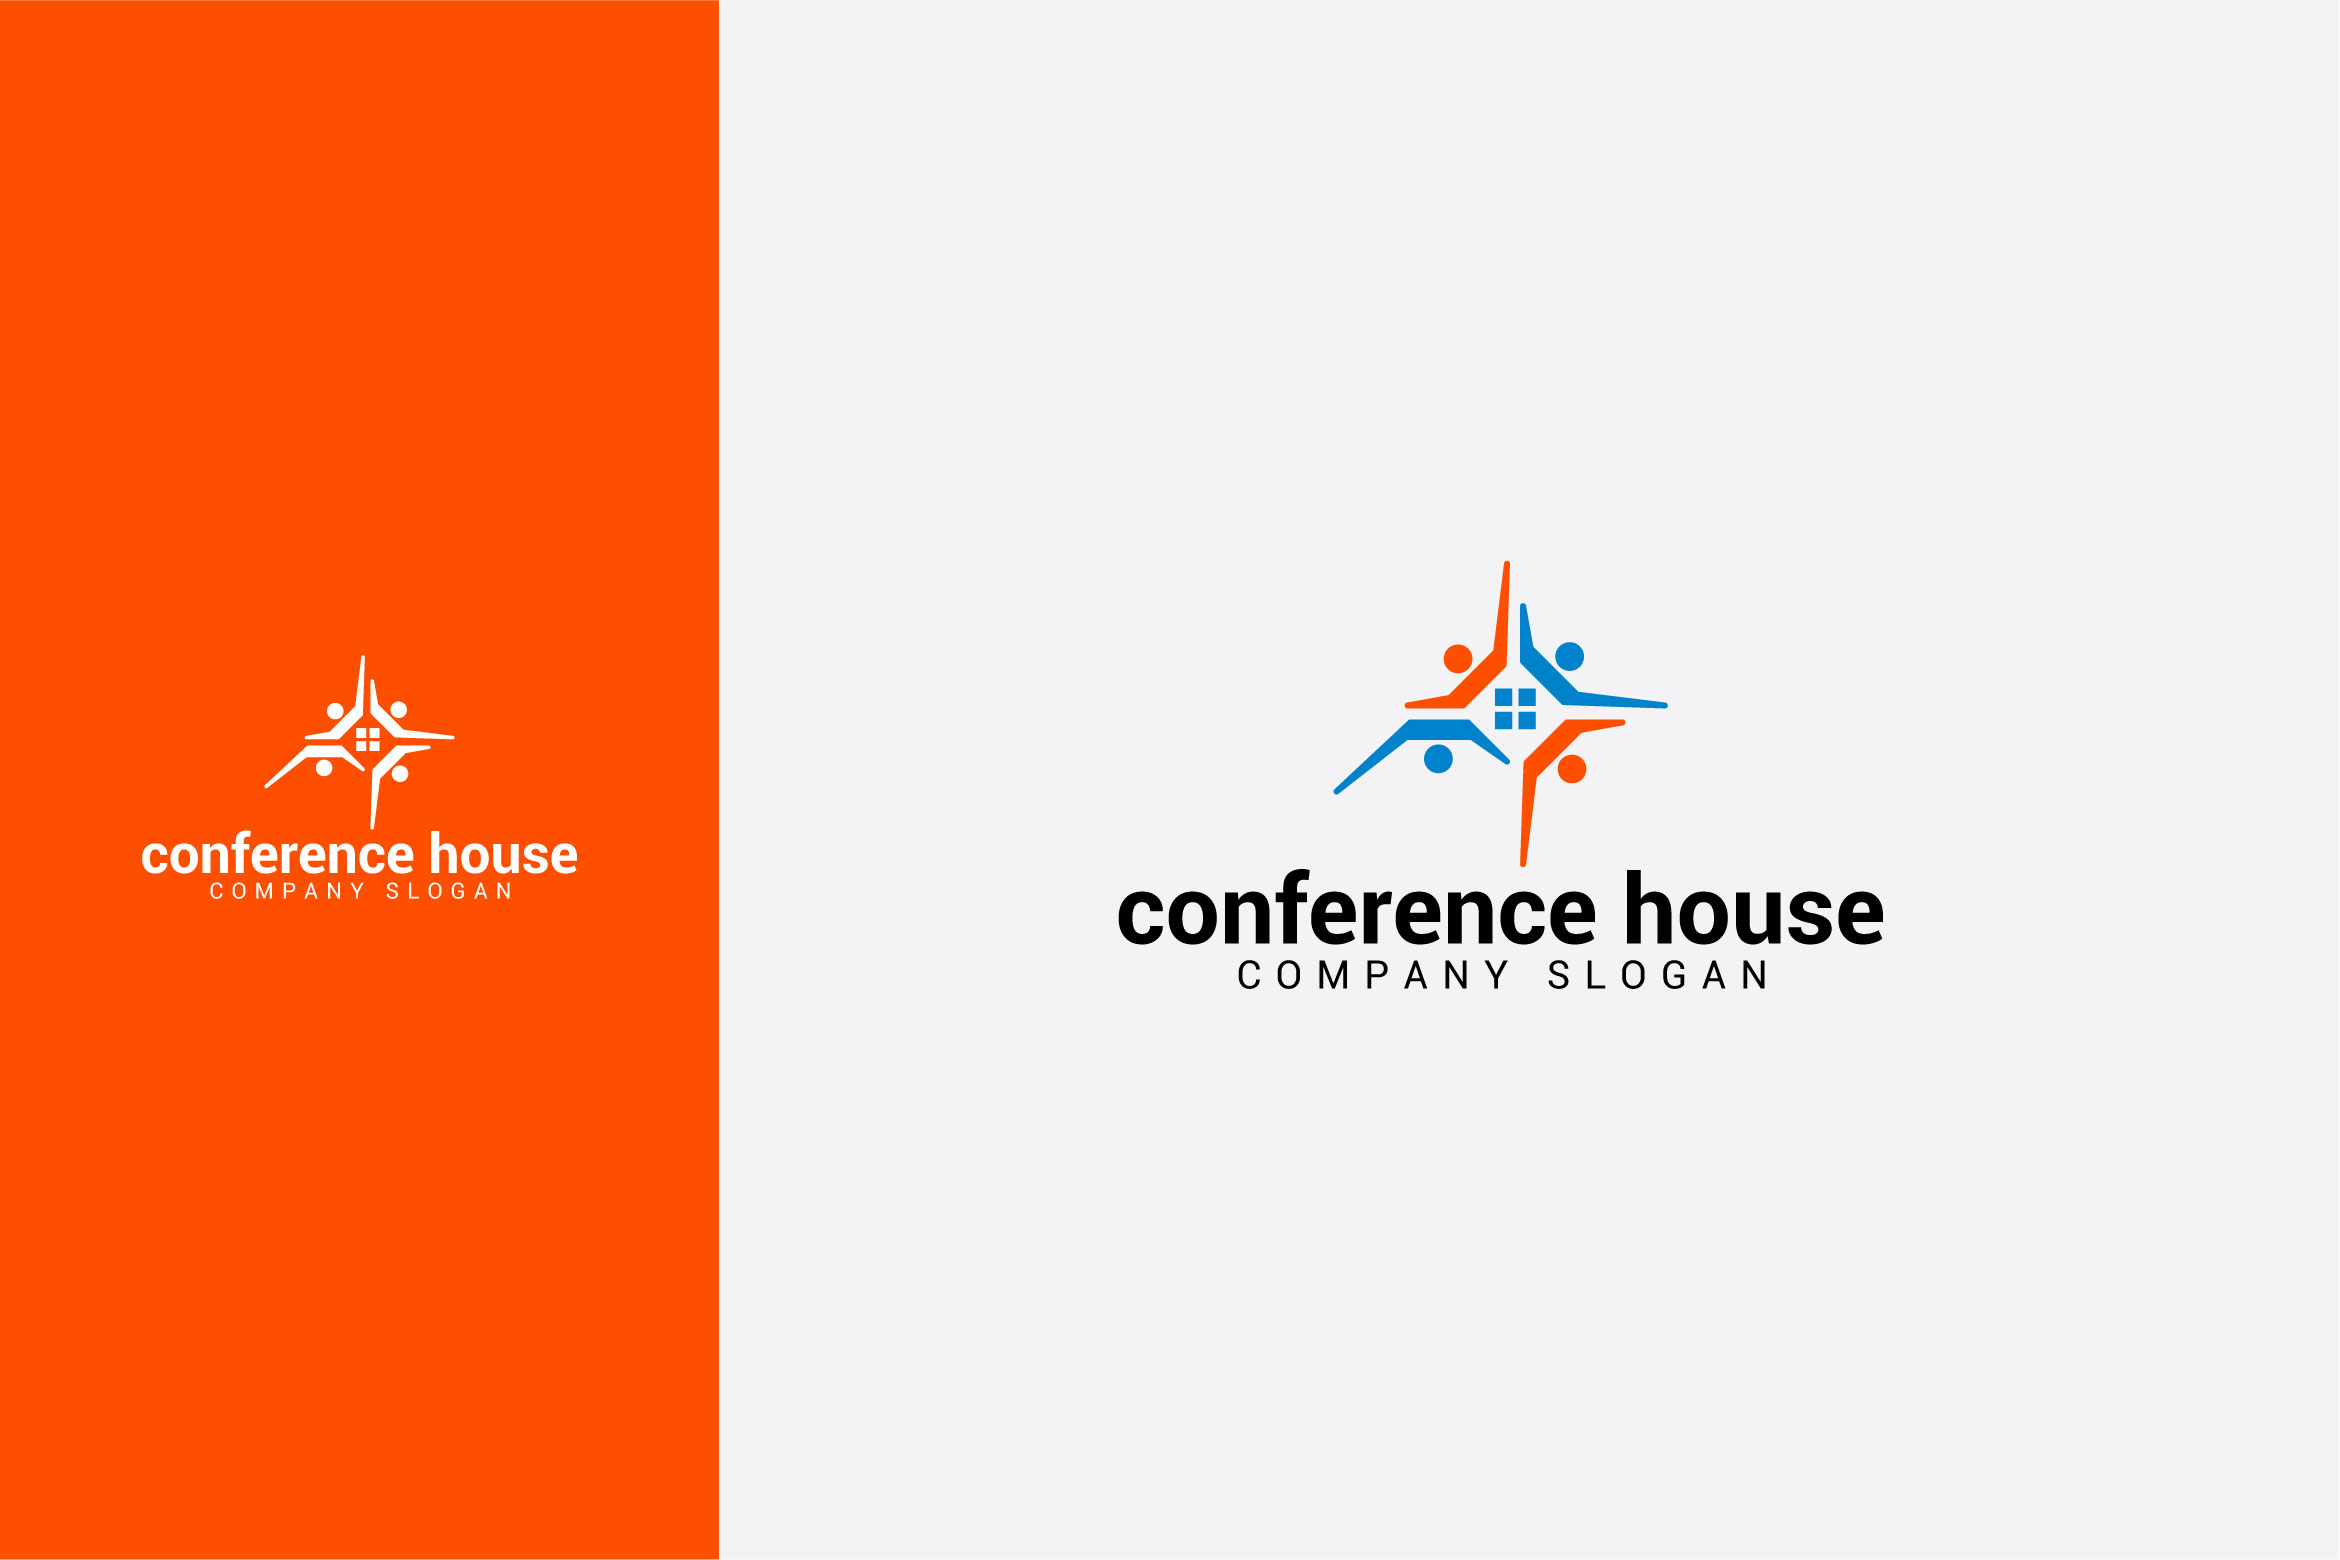 conference house logo example image 1